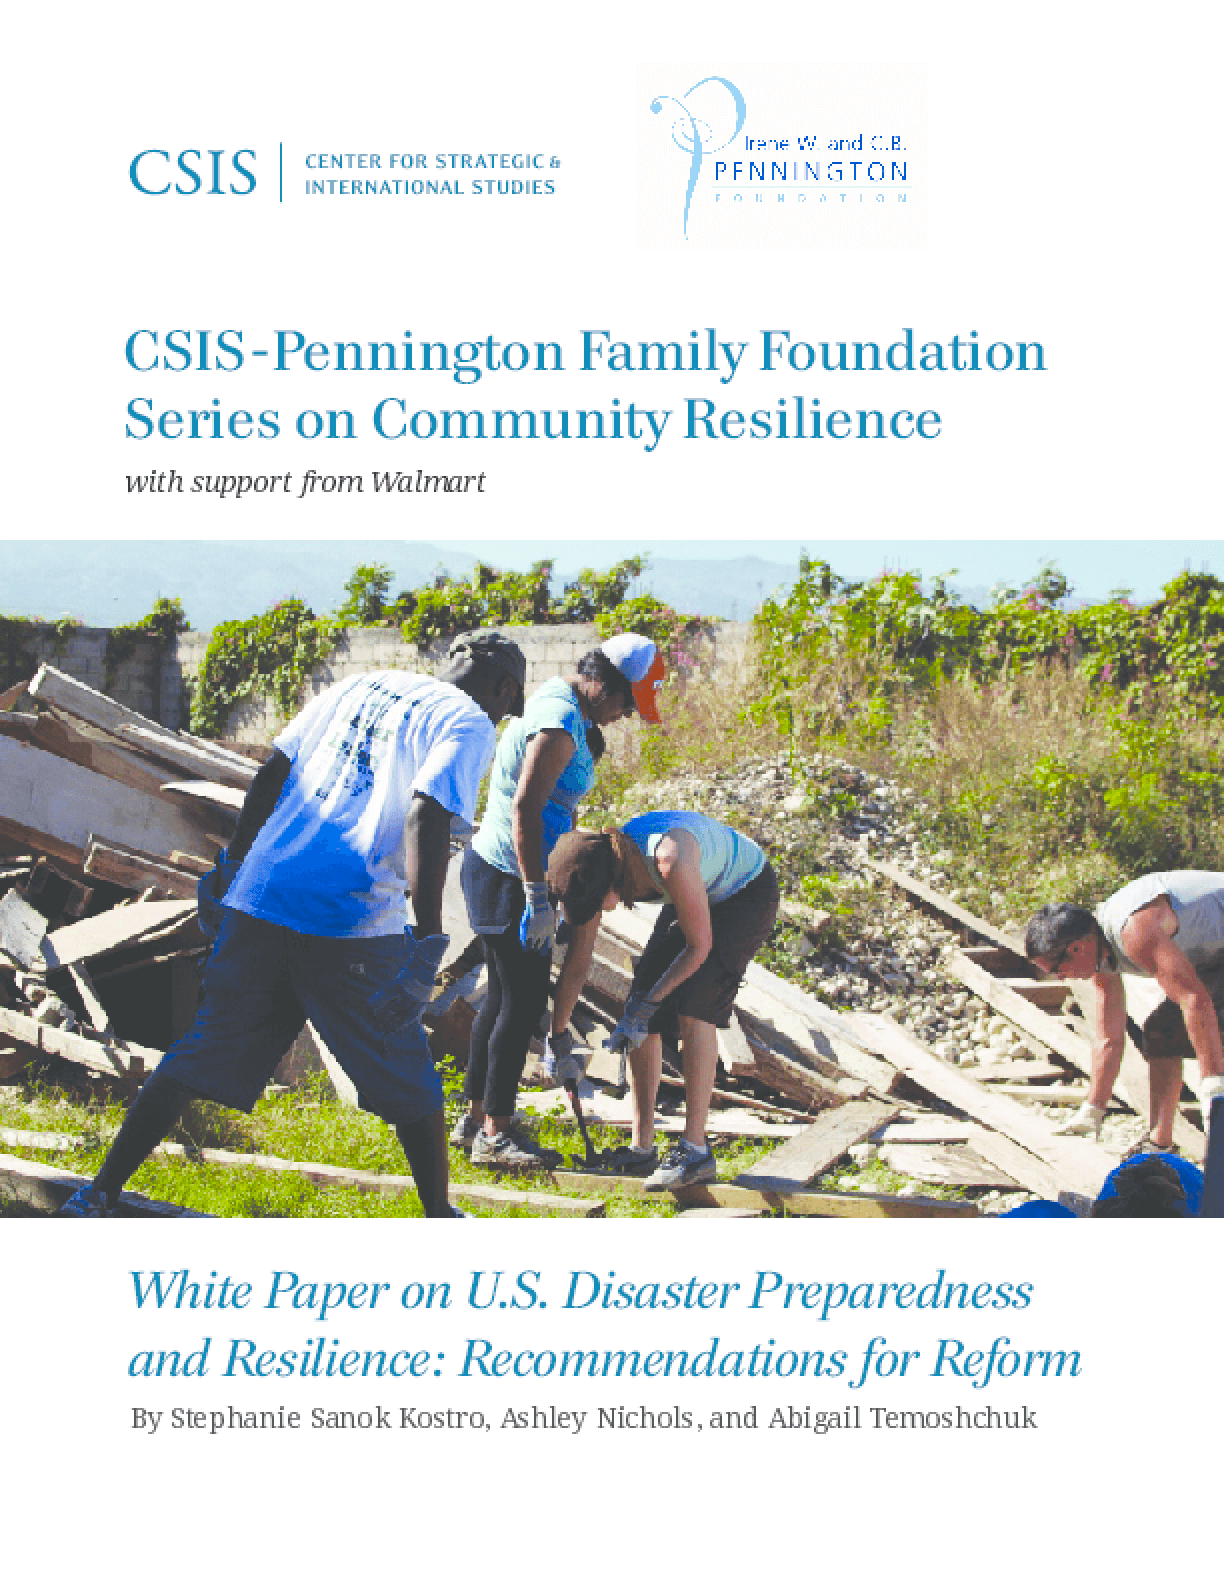 White Paper on U.S. Disaster Preparedness and Resilience: Recommendations for Reform